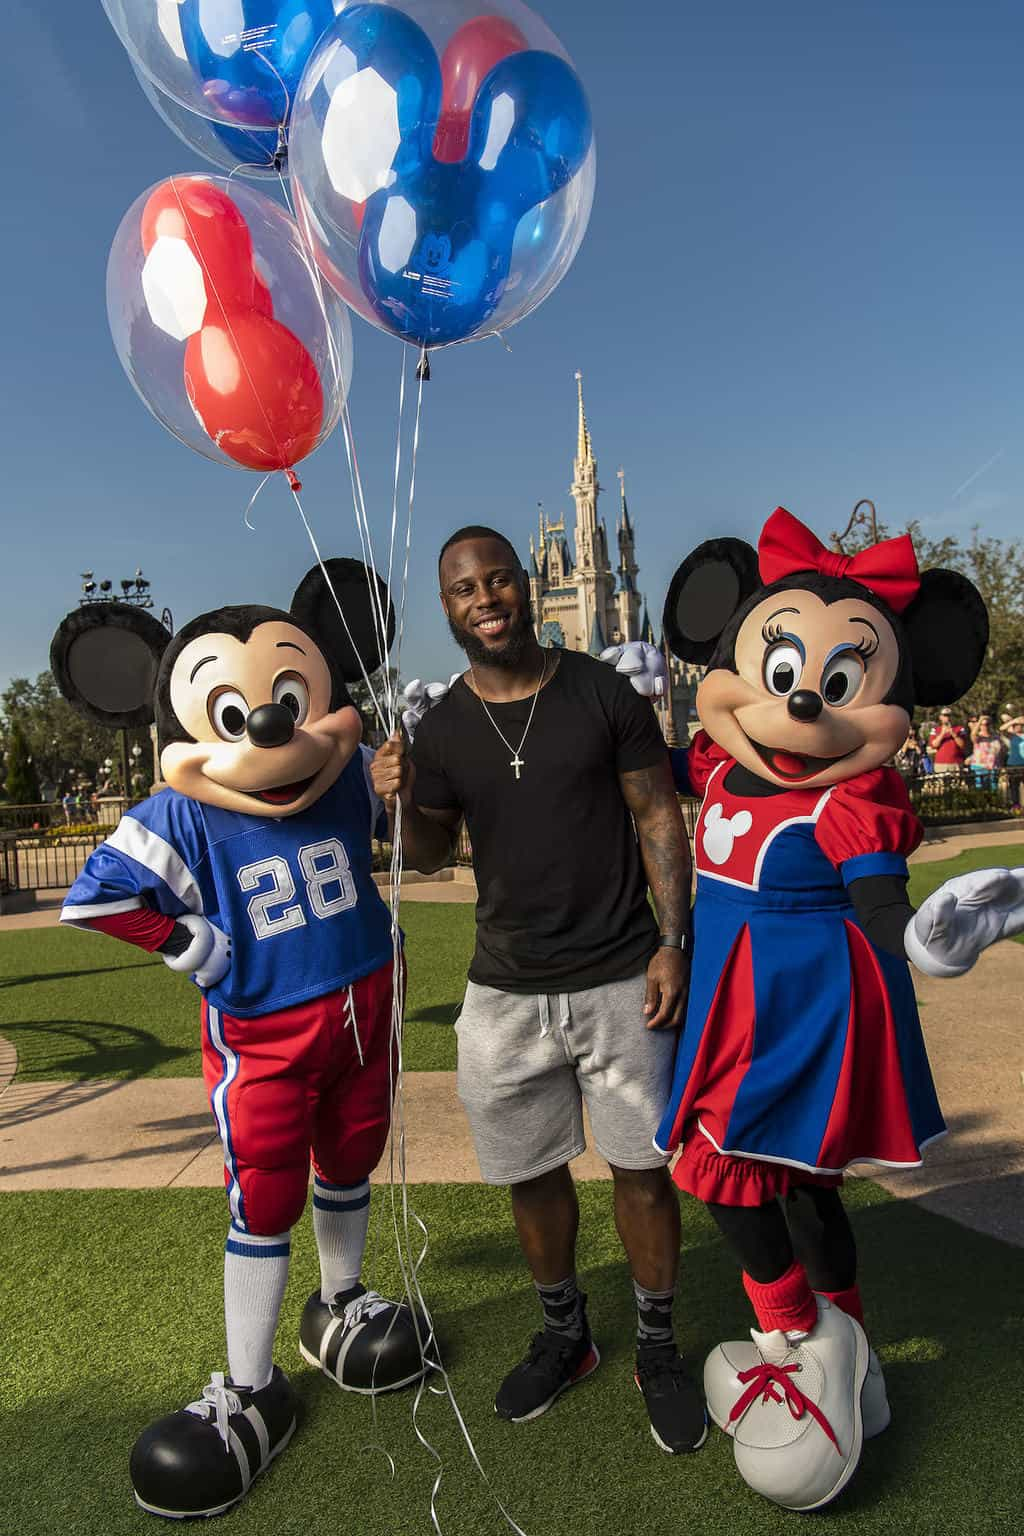 NFL Super Bowl star running back James White joins Mickey Mouse and Minnie Mouse after starring in a milestone Disney moment Monday, Feb. 6, 2017 (Matt Stroshane, photographer)